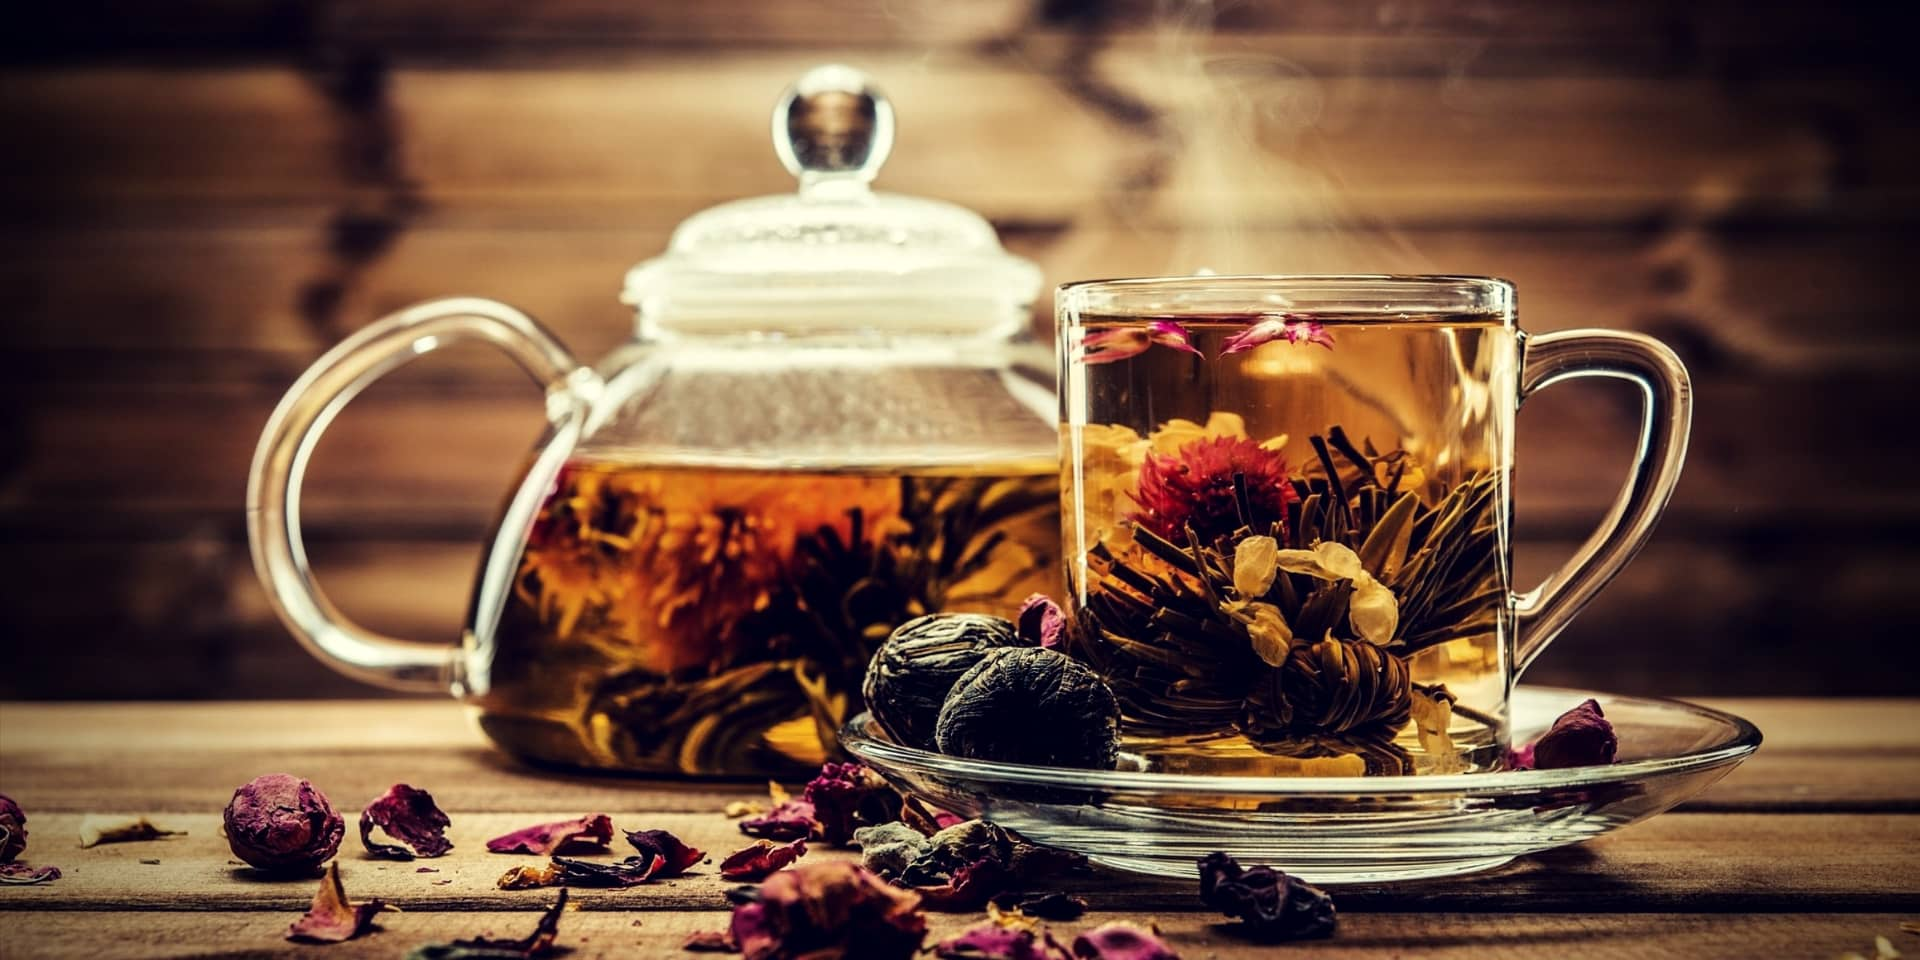 Erection Tea Teapot and glass cup with blooming tea flower inside against wooden background